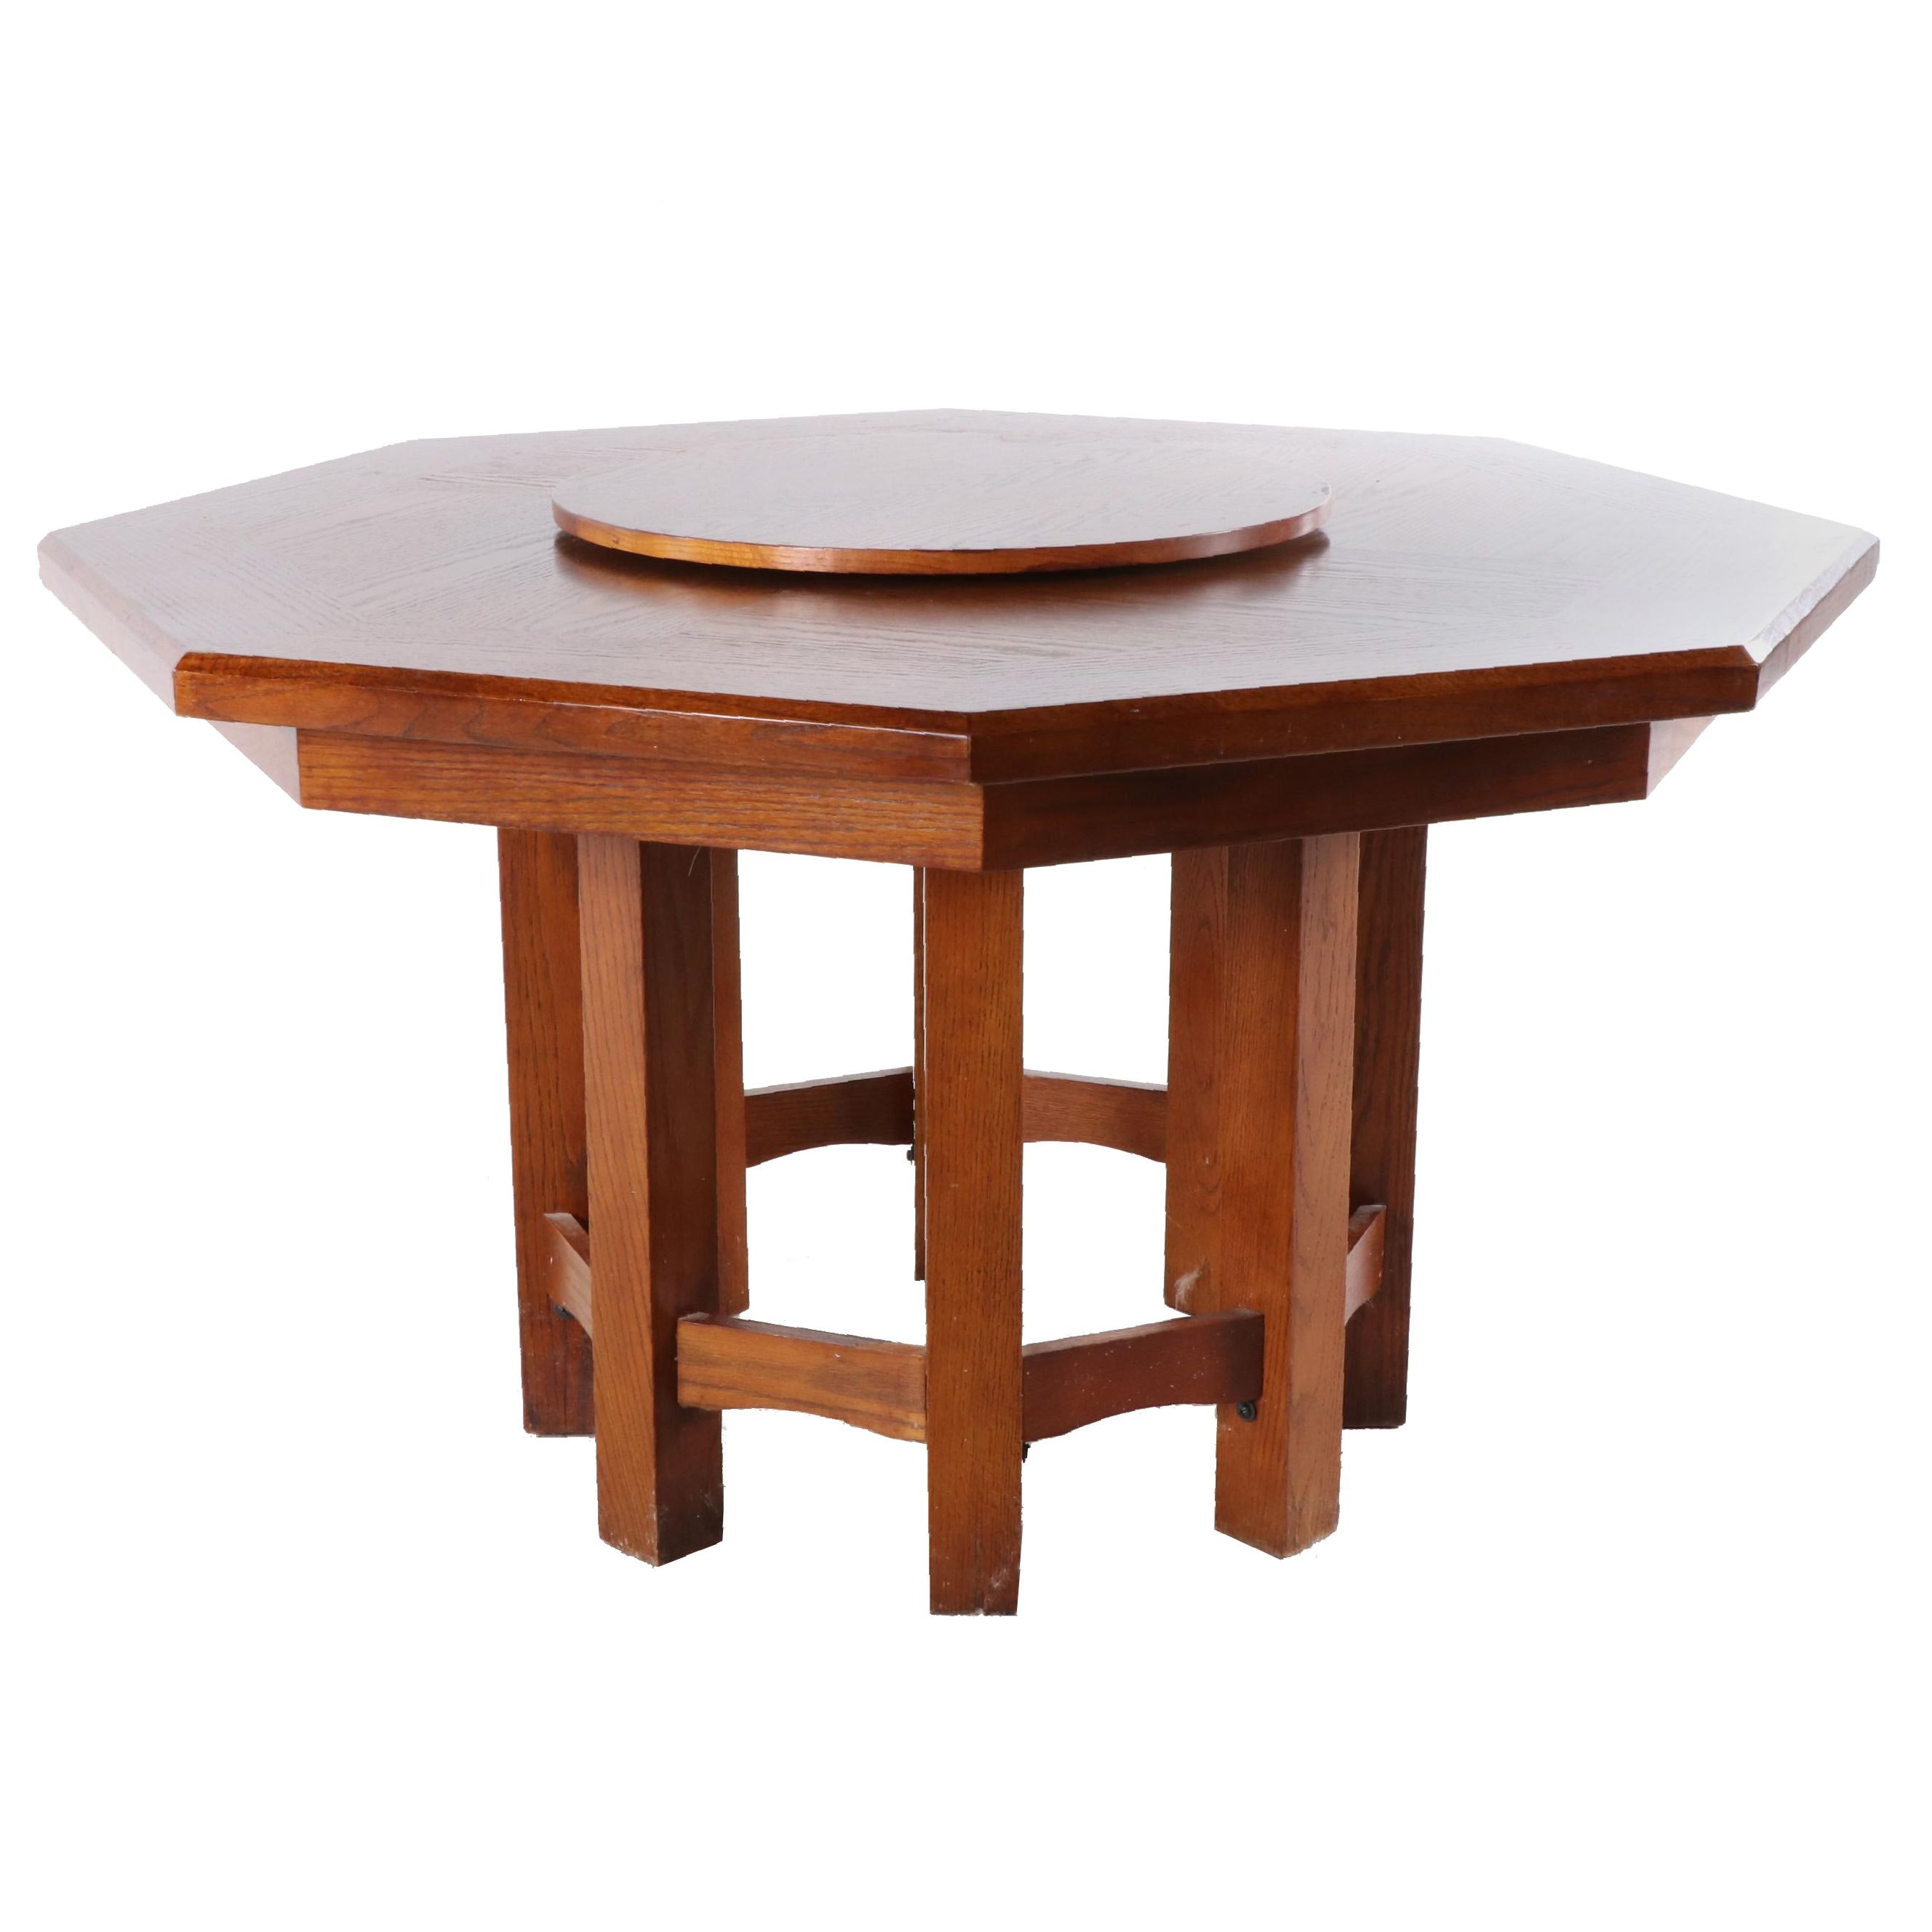 Oak Octagonal Dining Table With Lazy Susan, Late 20th Century